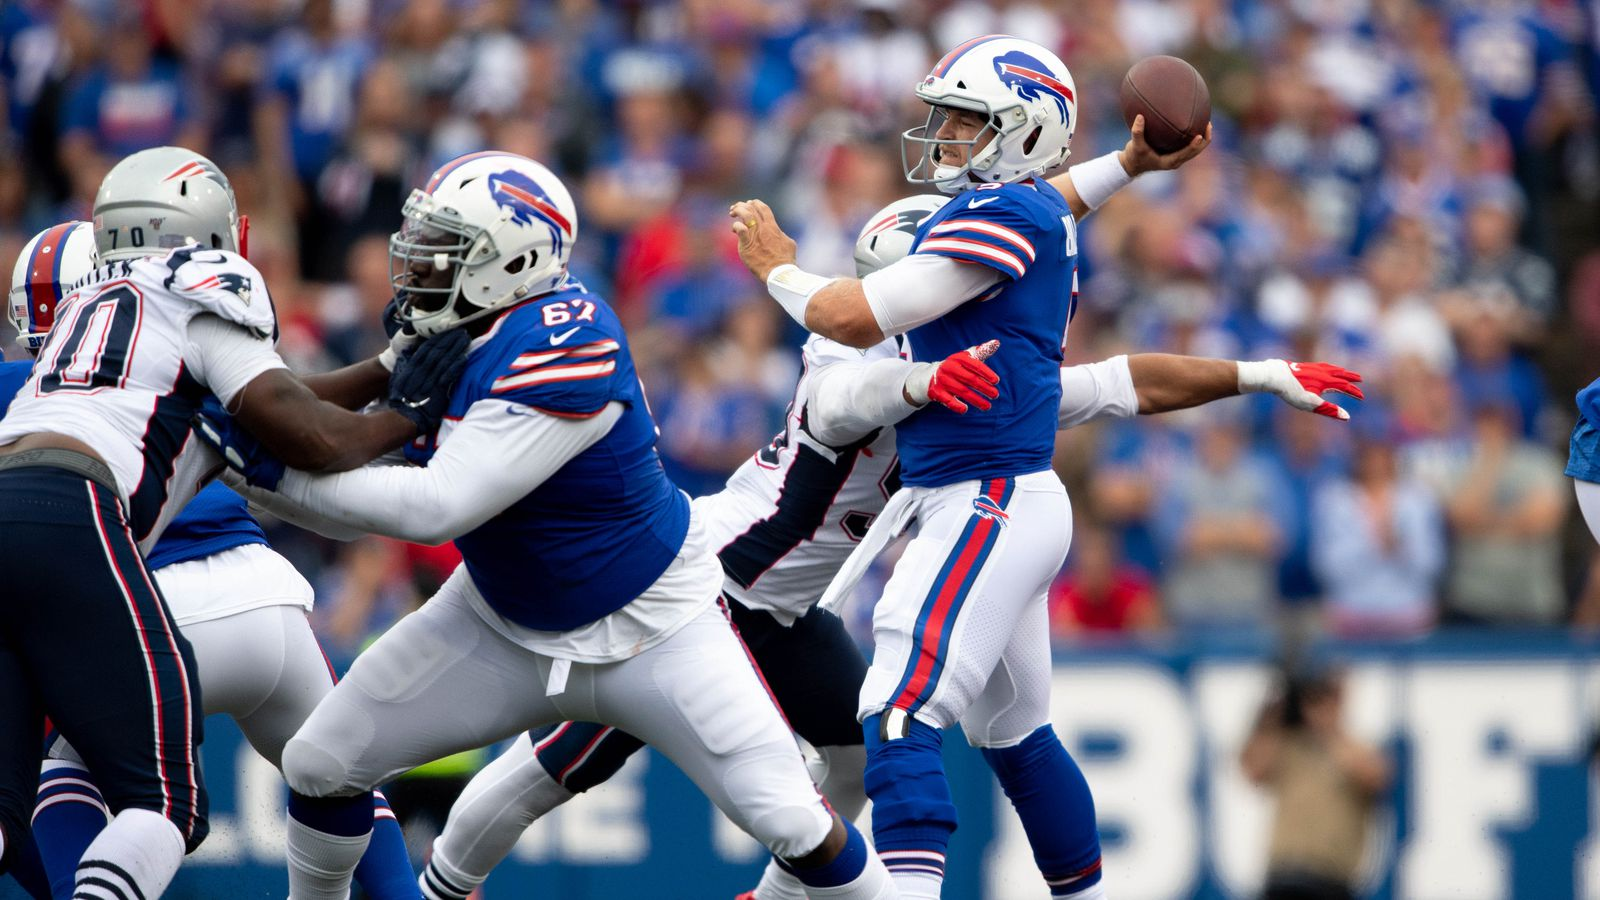 The NFL, flex scheduling, and the Buffalo Bills